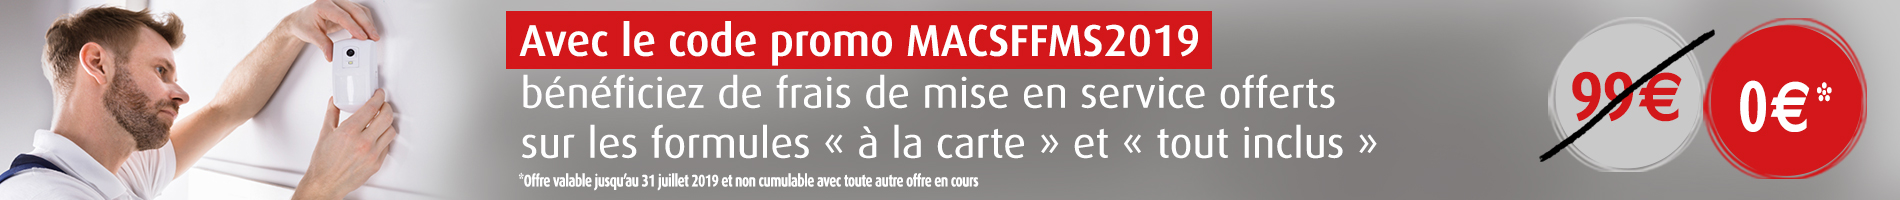 Offre essentielle MACSF protect home